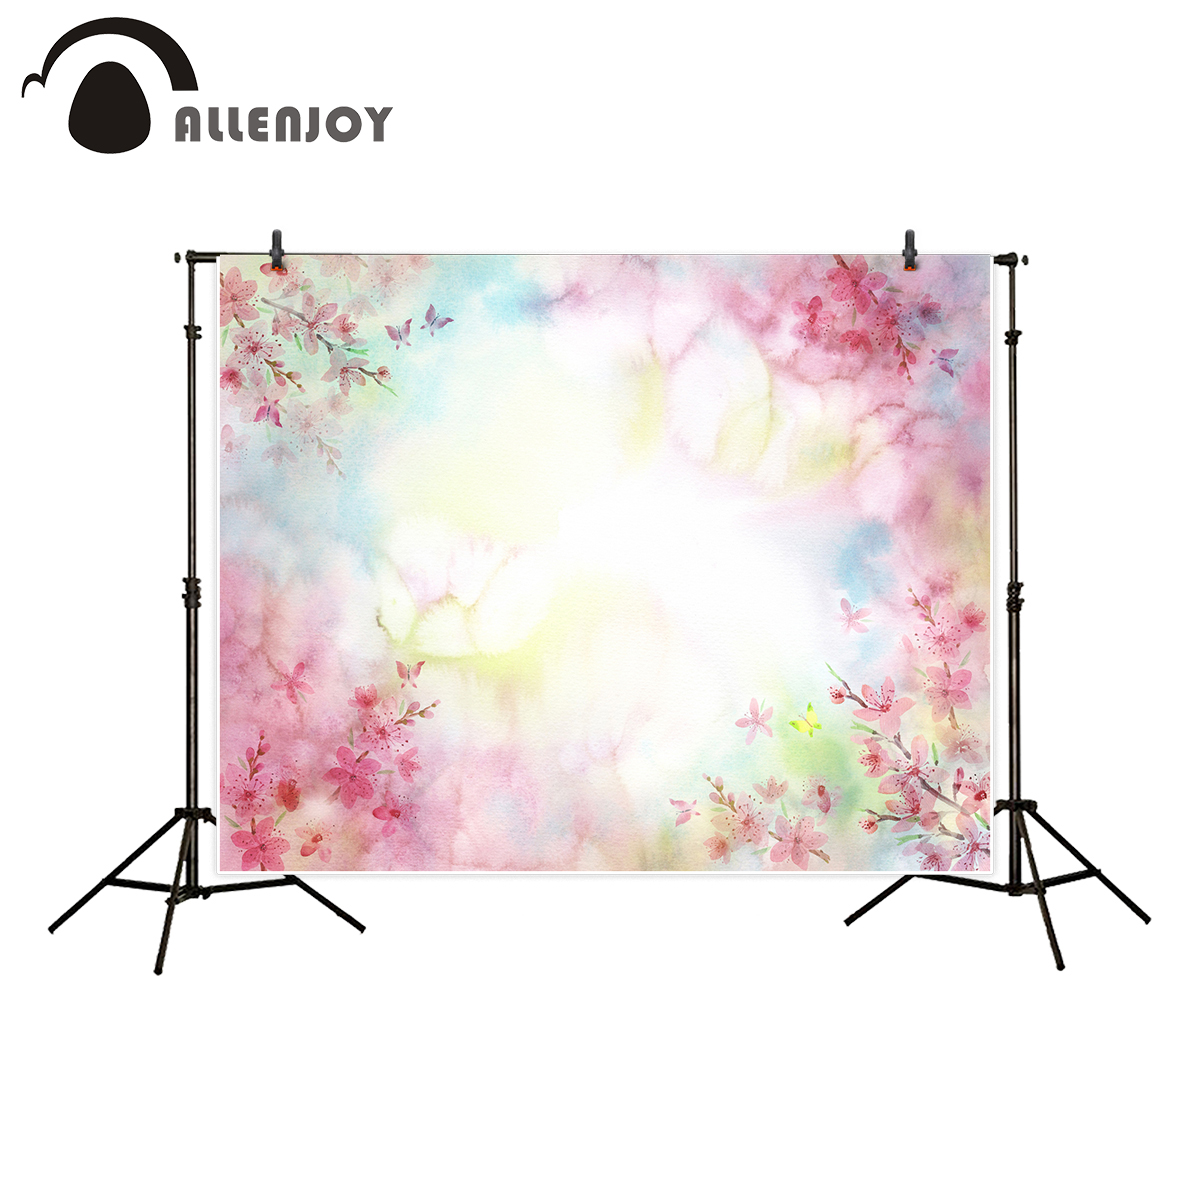 Allenjoy professional photography background Colorful Bokeh Pink Flowers Valentine's Day backdrop newborn baby shower photocall